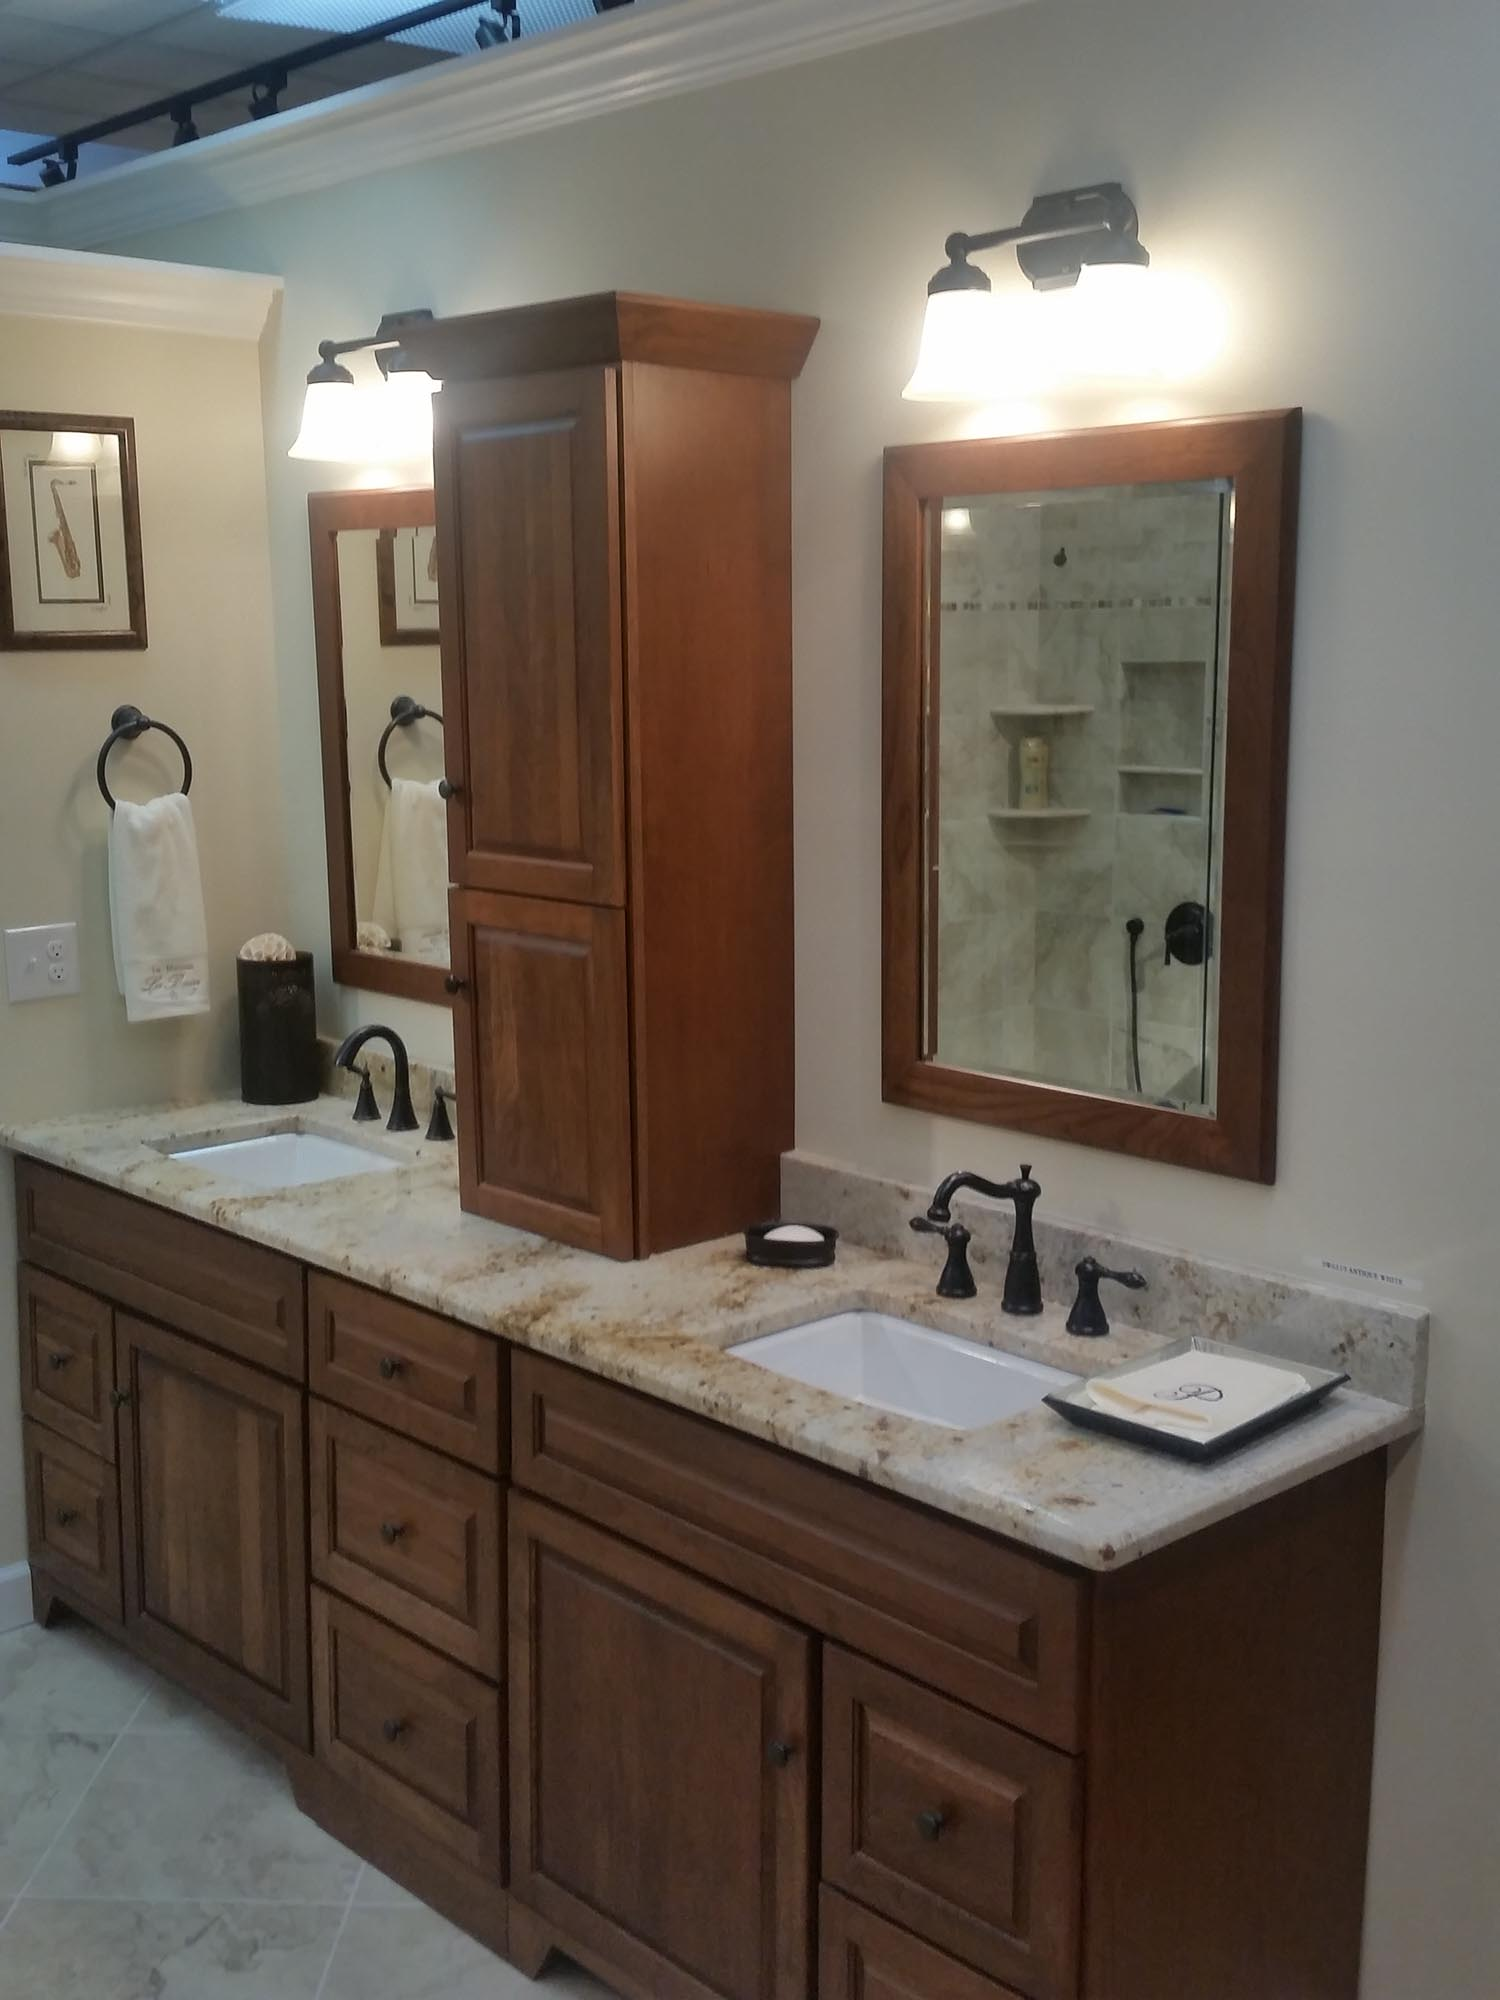 Bathroom Remodeling Cary Nc bathroom remodel cary nc ~ dact